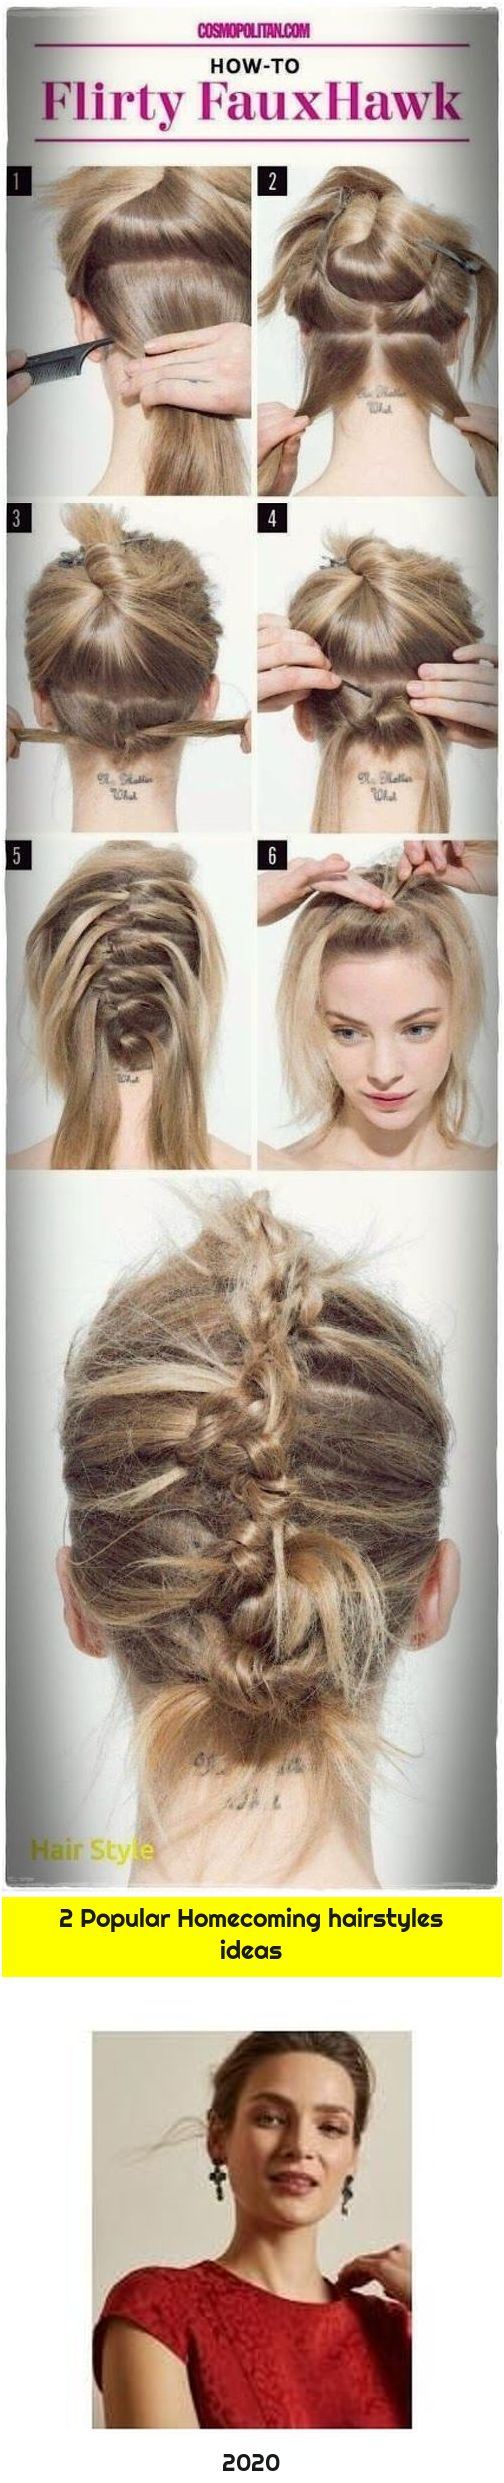 2 Popular Homecoming hairstyles ideas